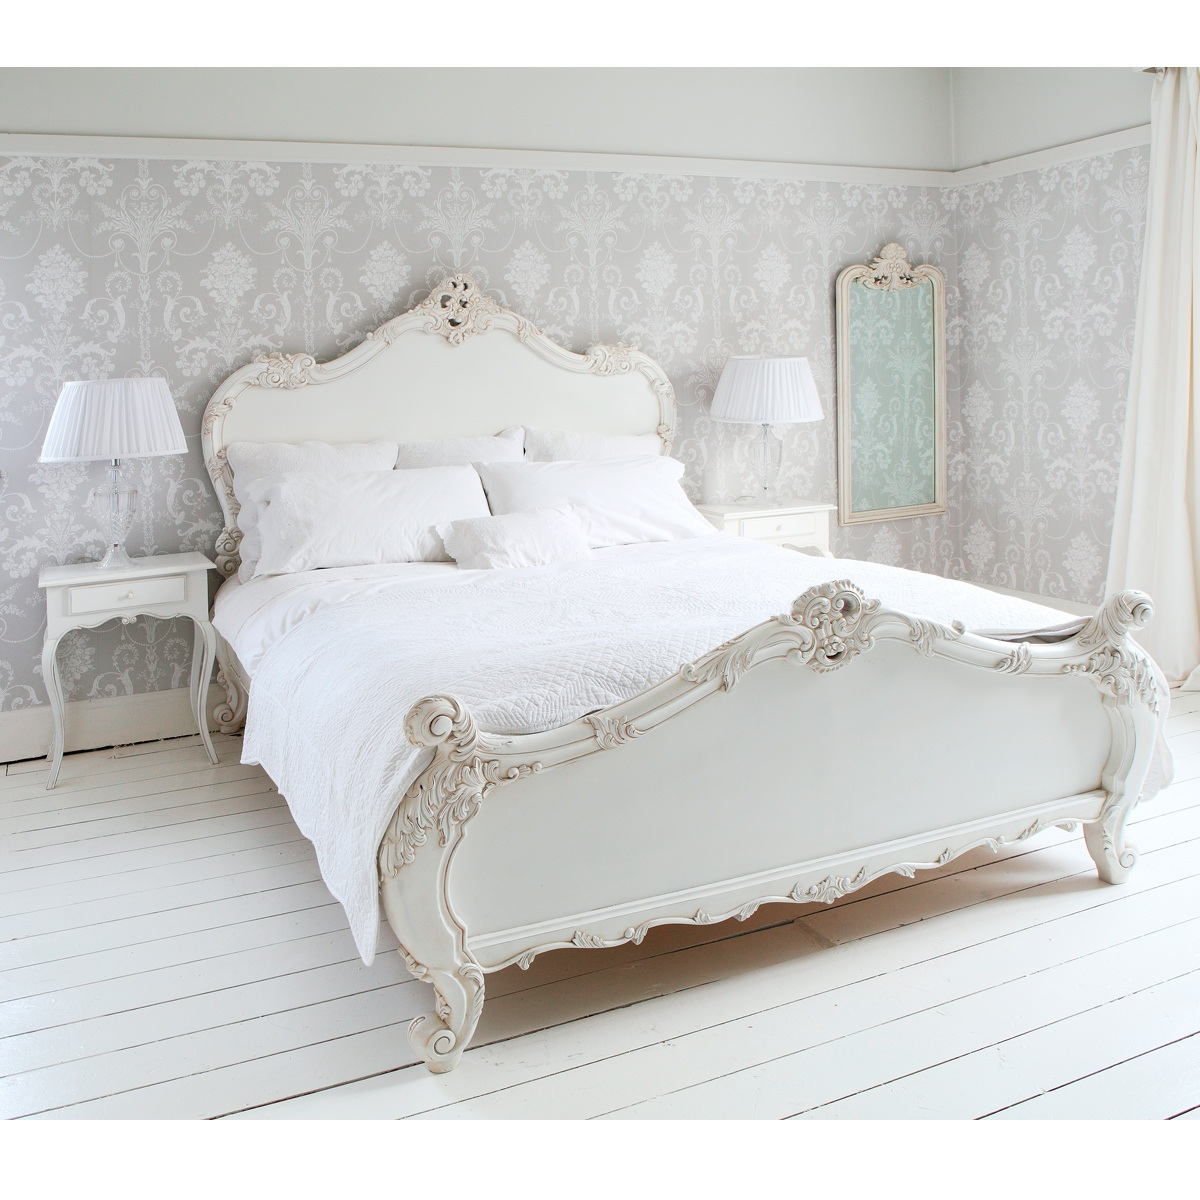 Provencal sassy white french bed french bedroom company for Classic french beds